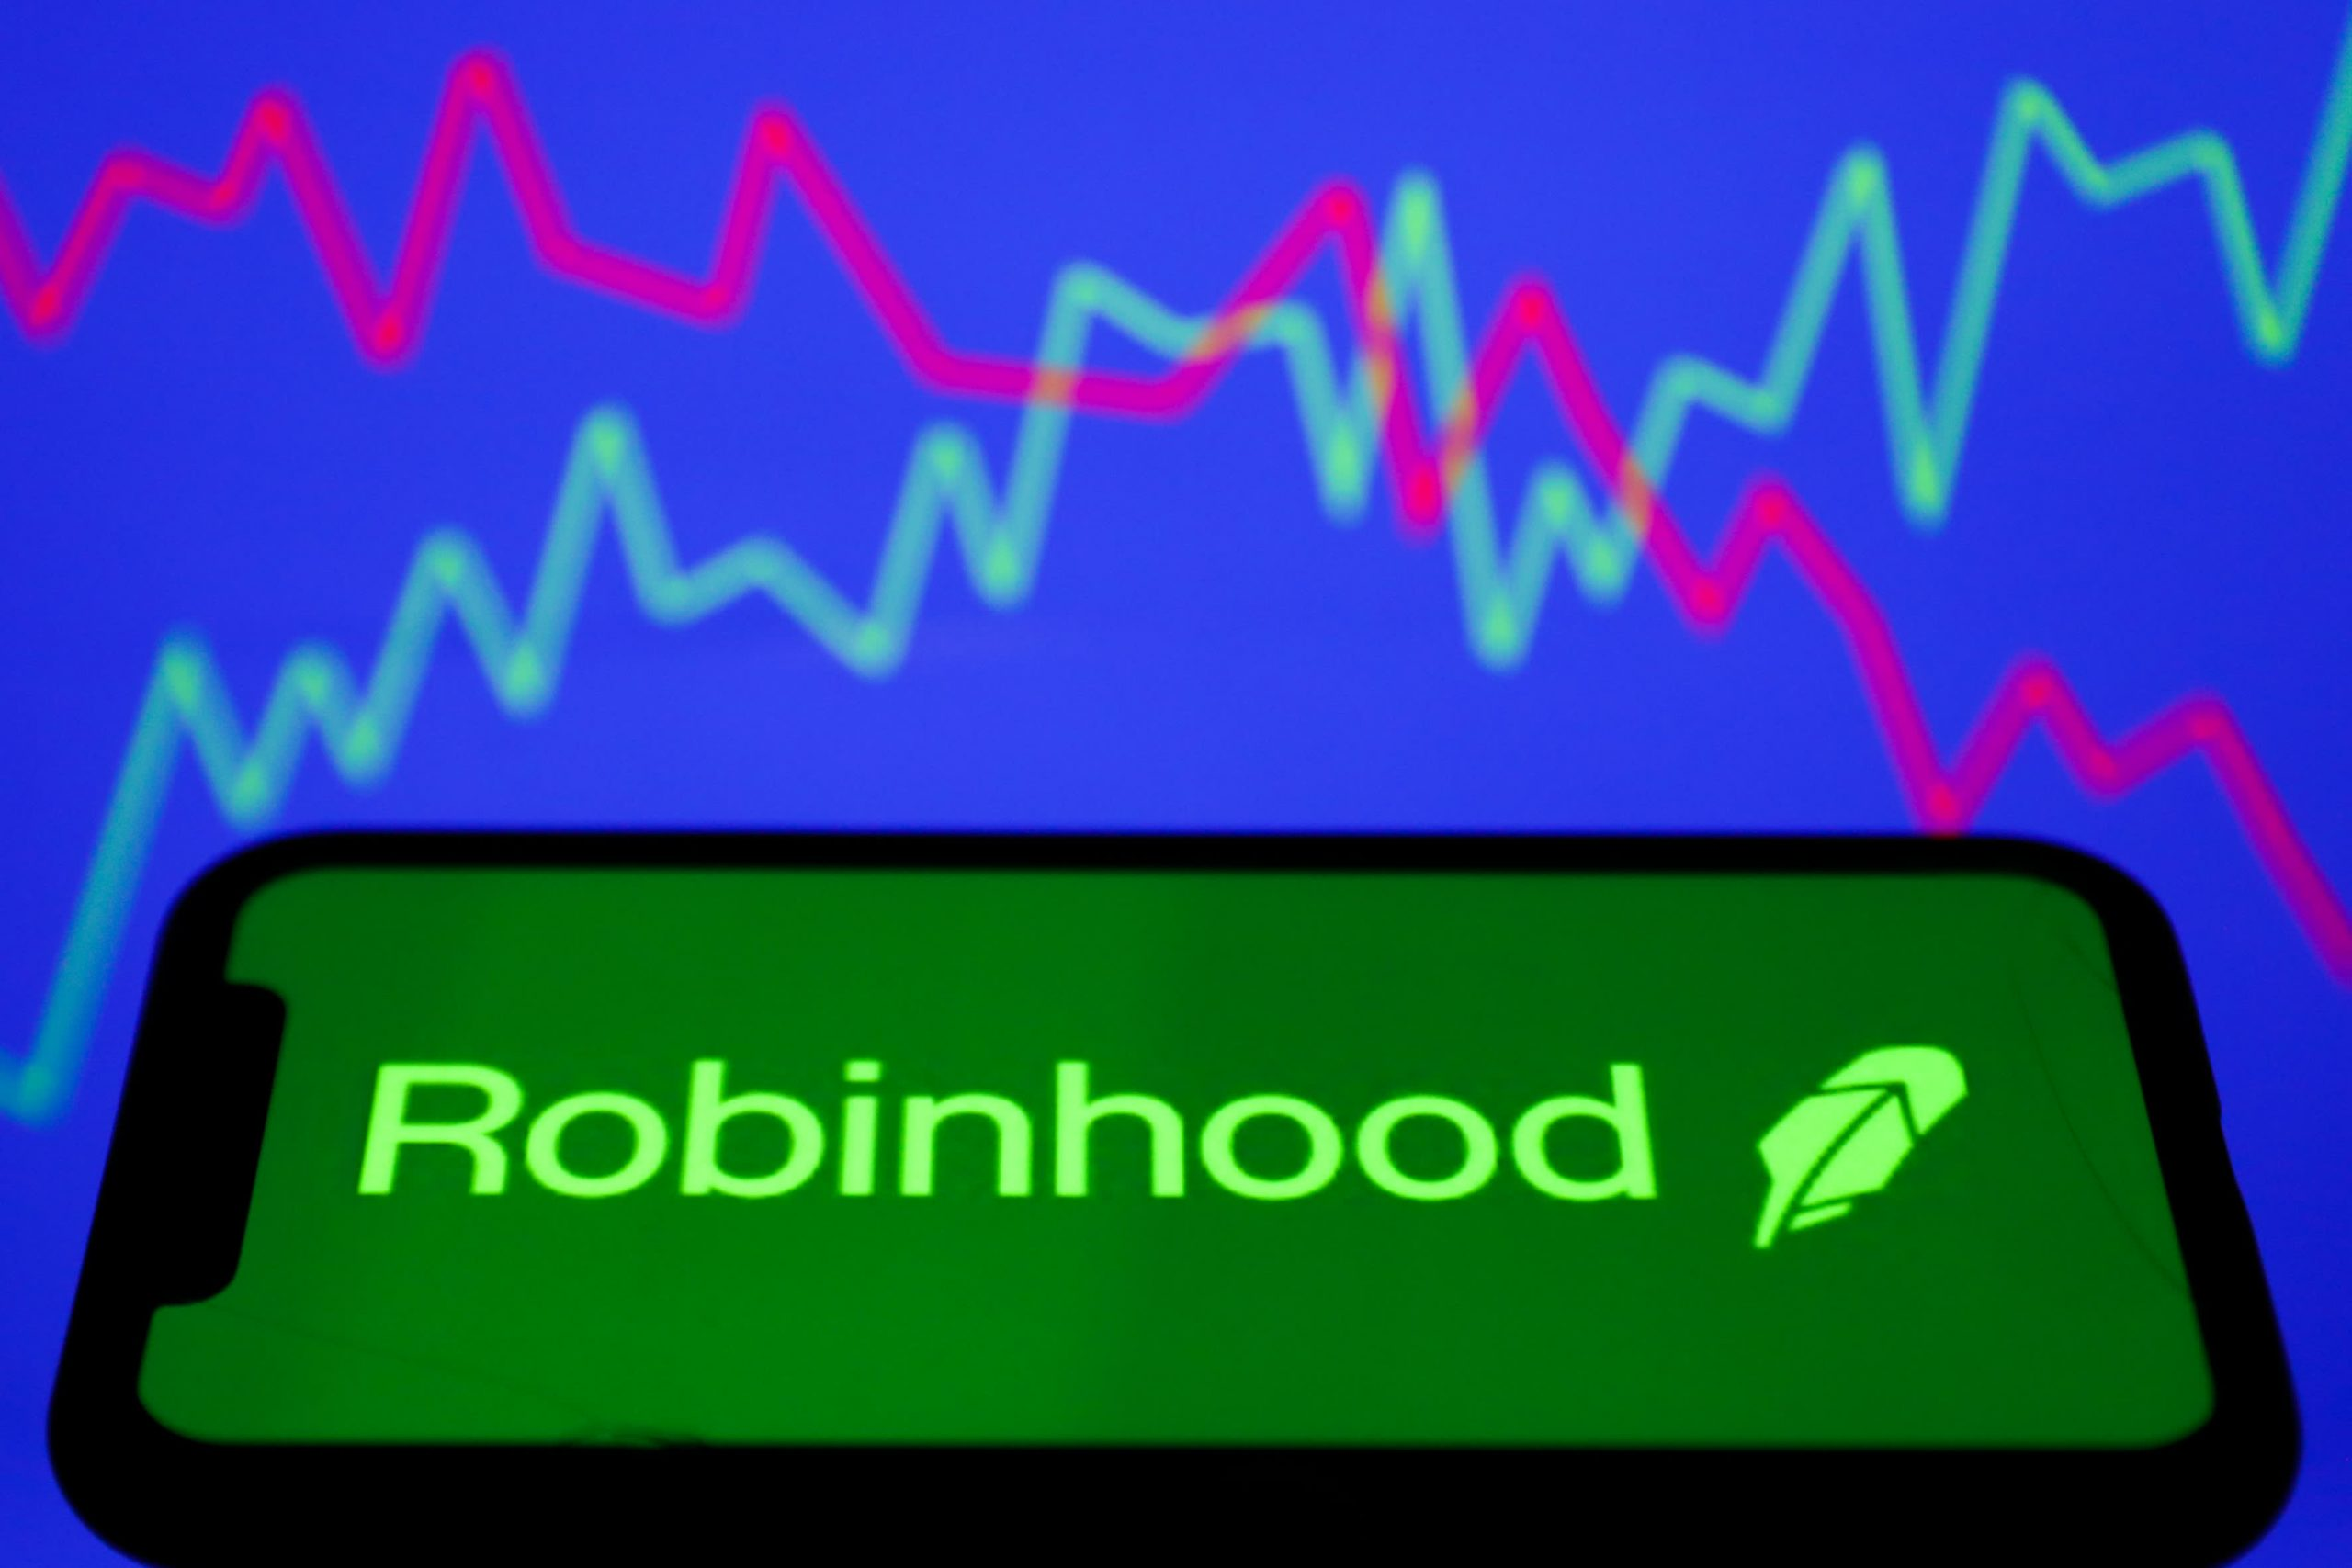 Cramer urges investors to take profits in Robinhood as it becomes a meme stock